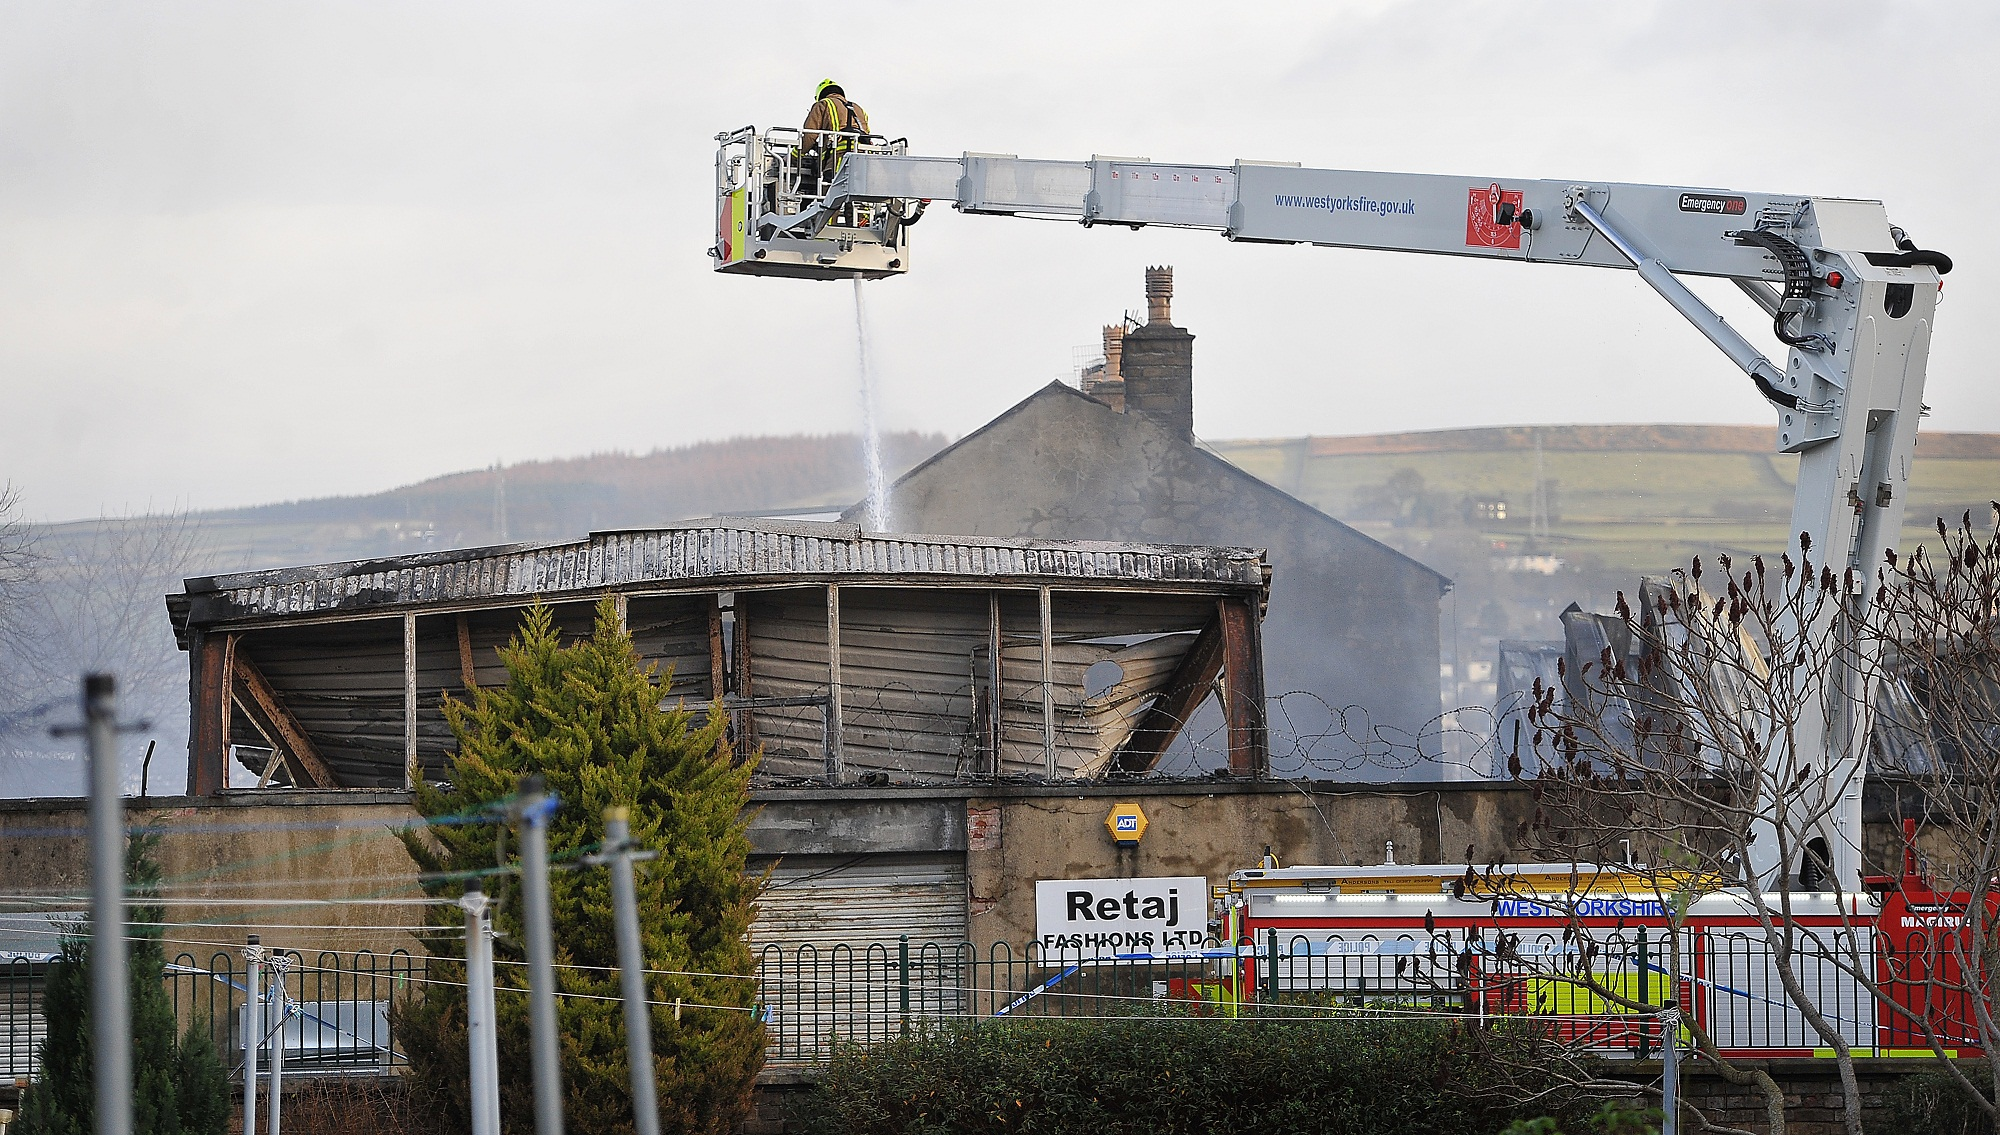 Firefighters douse down the scene of devastation after fire rips through a former snooker hall for the second time in less than a week, completely gutting the building